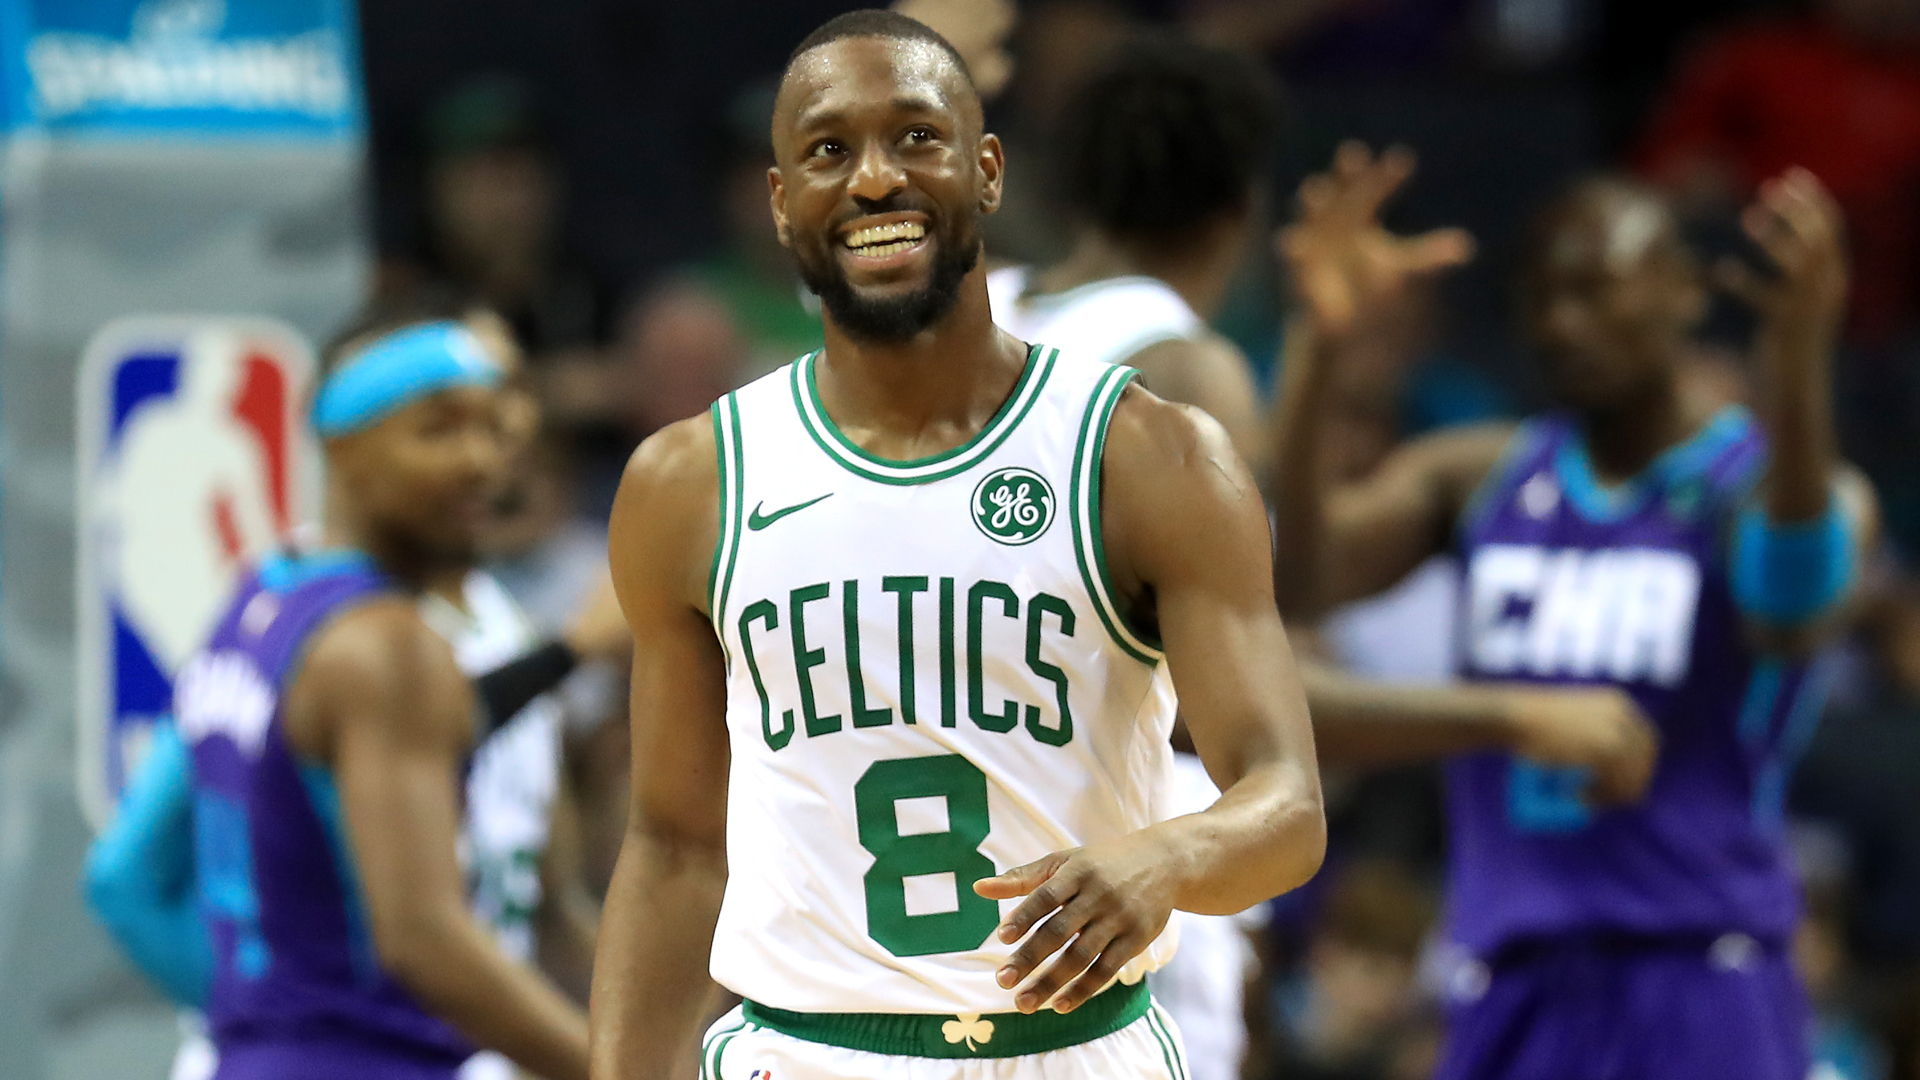 Kemba Walker returned to Charlotte as the Boston Celtics eased past the Hornets in the NBA.